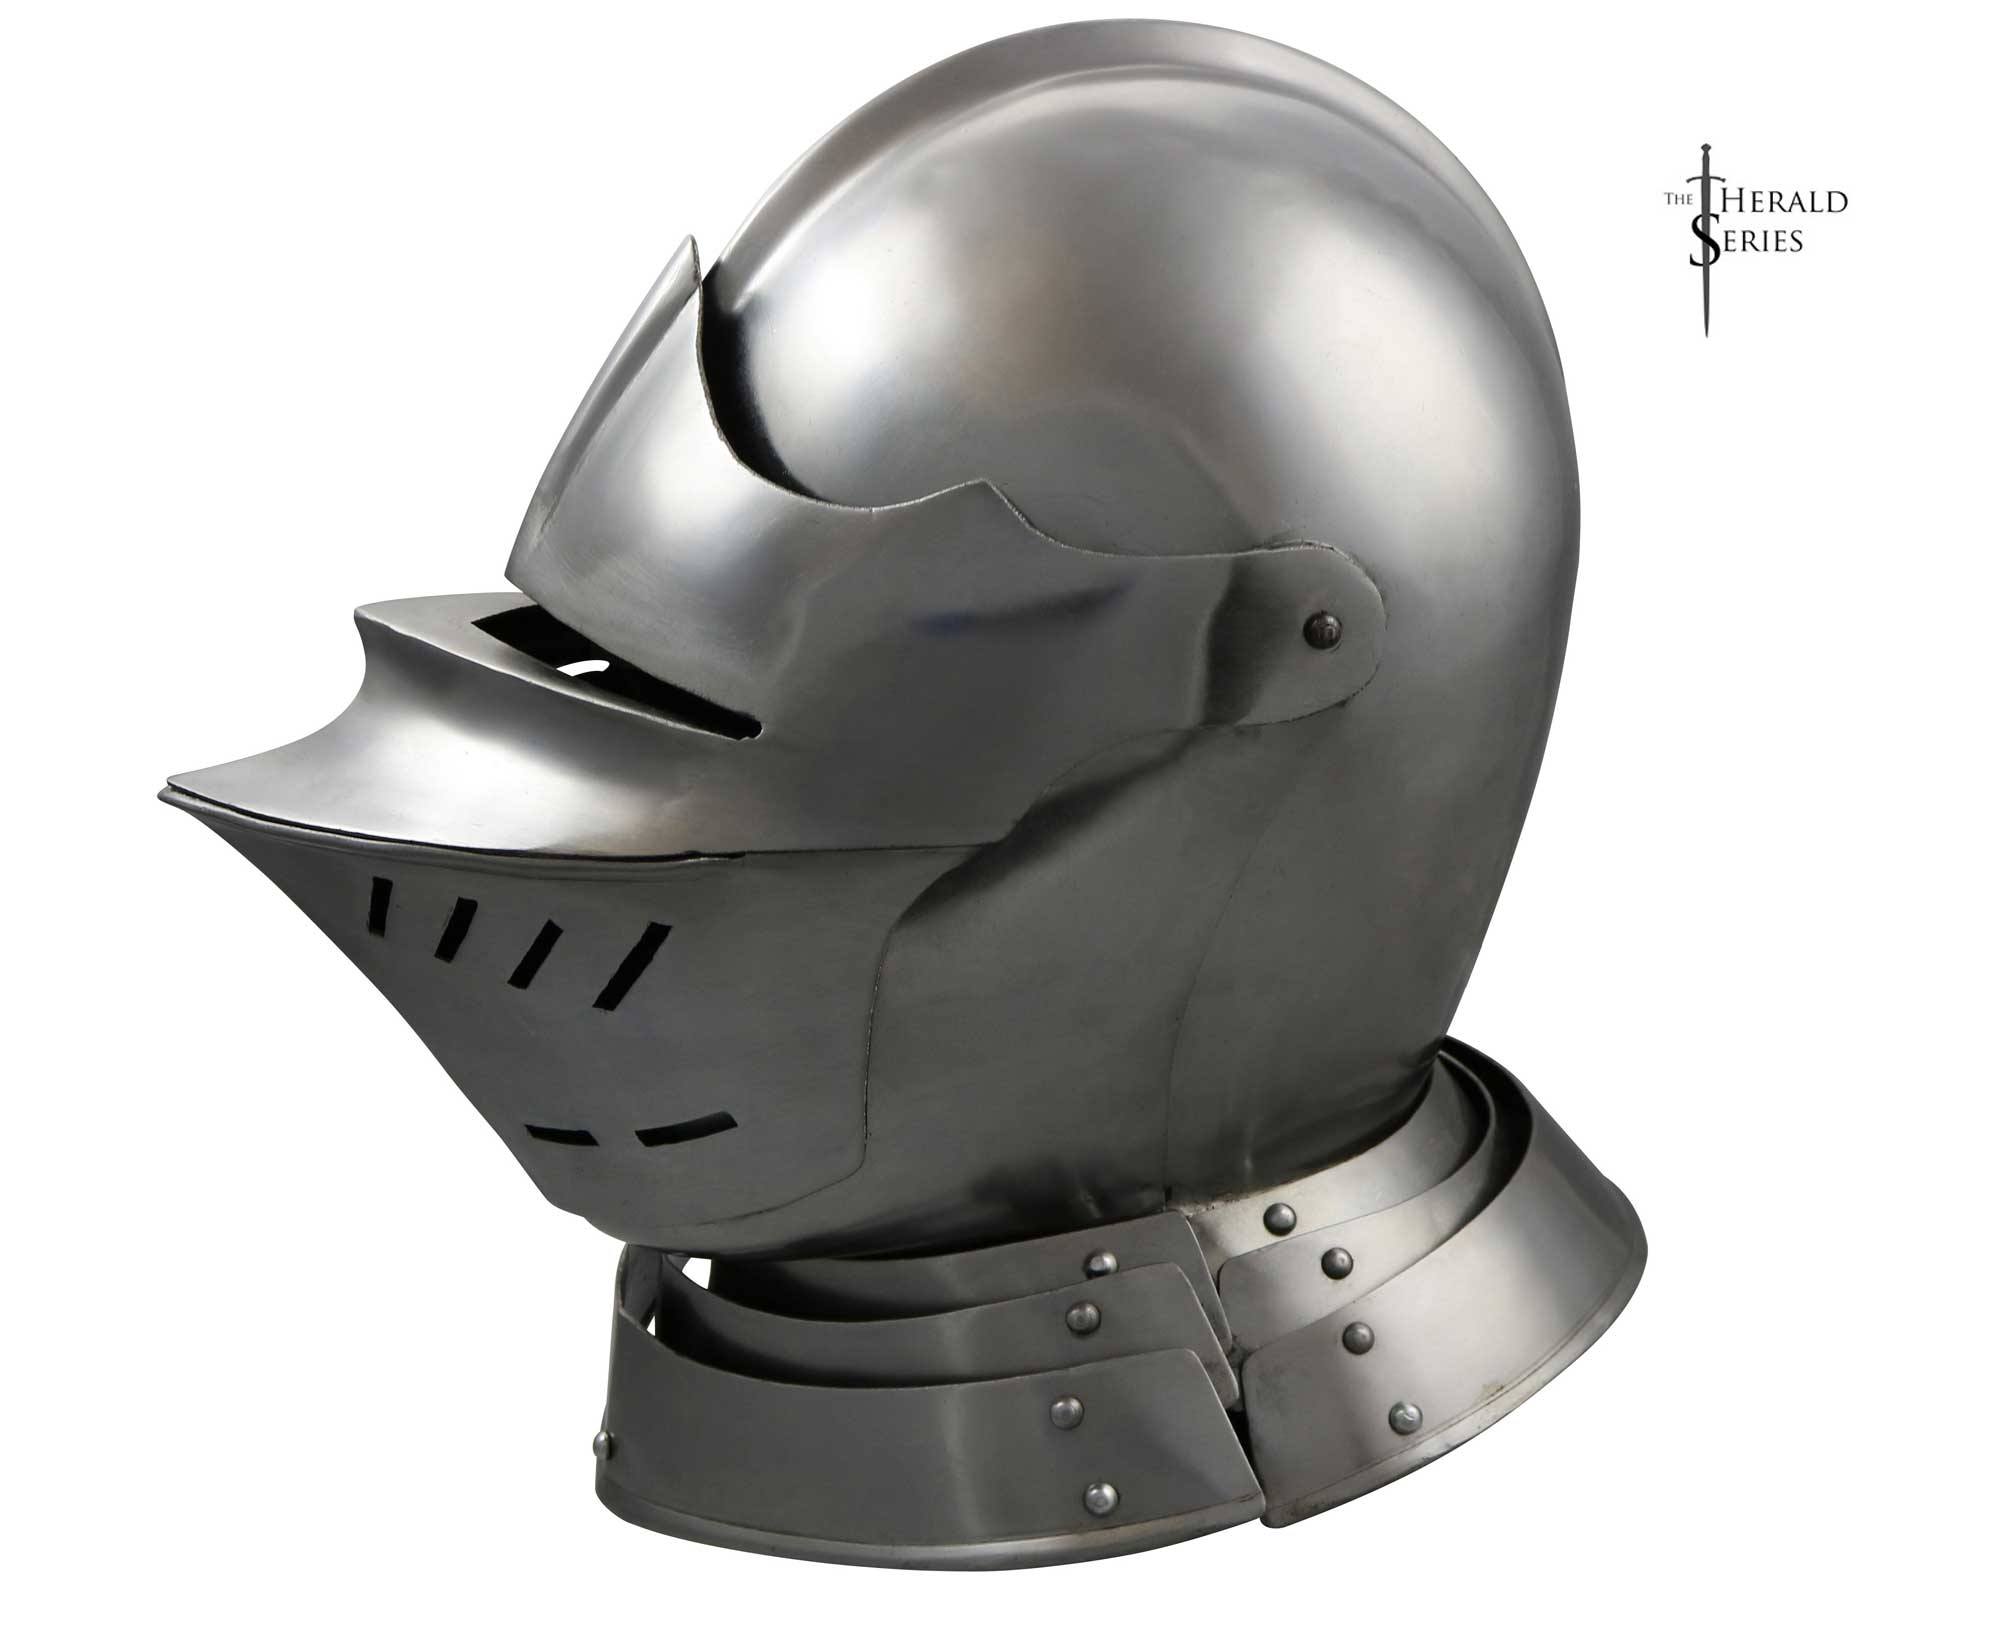 2211 \u2013 15th C. Closed Helmet (2011)